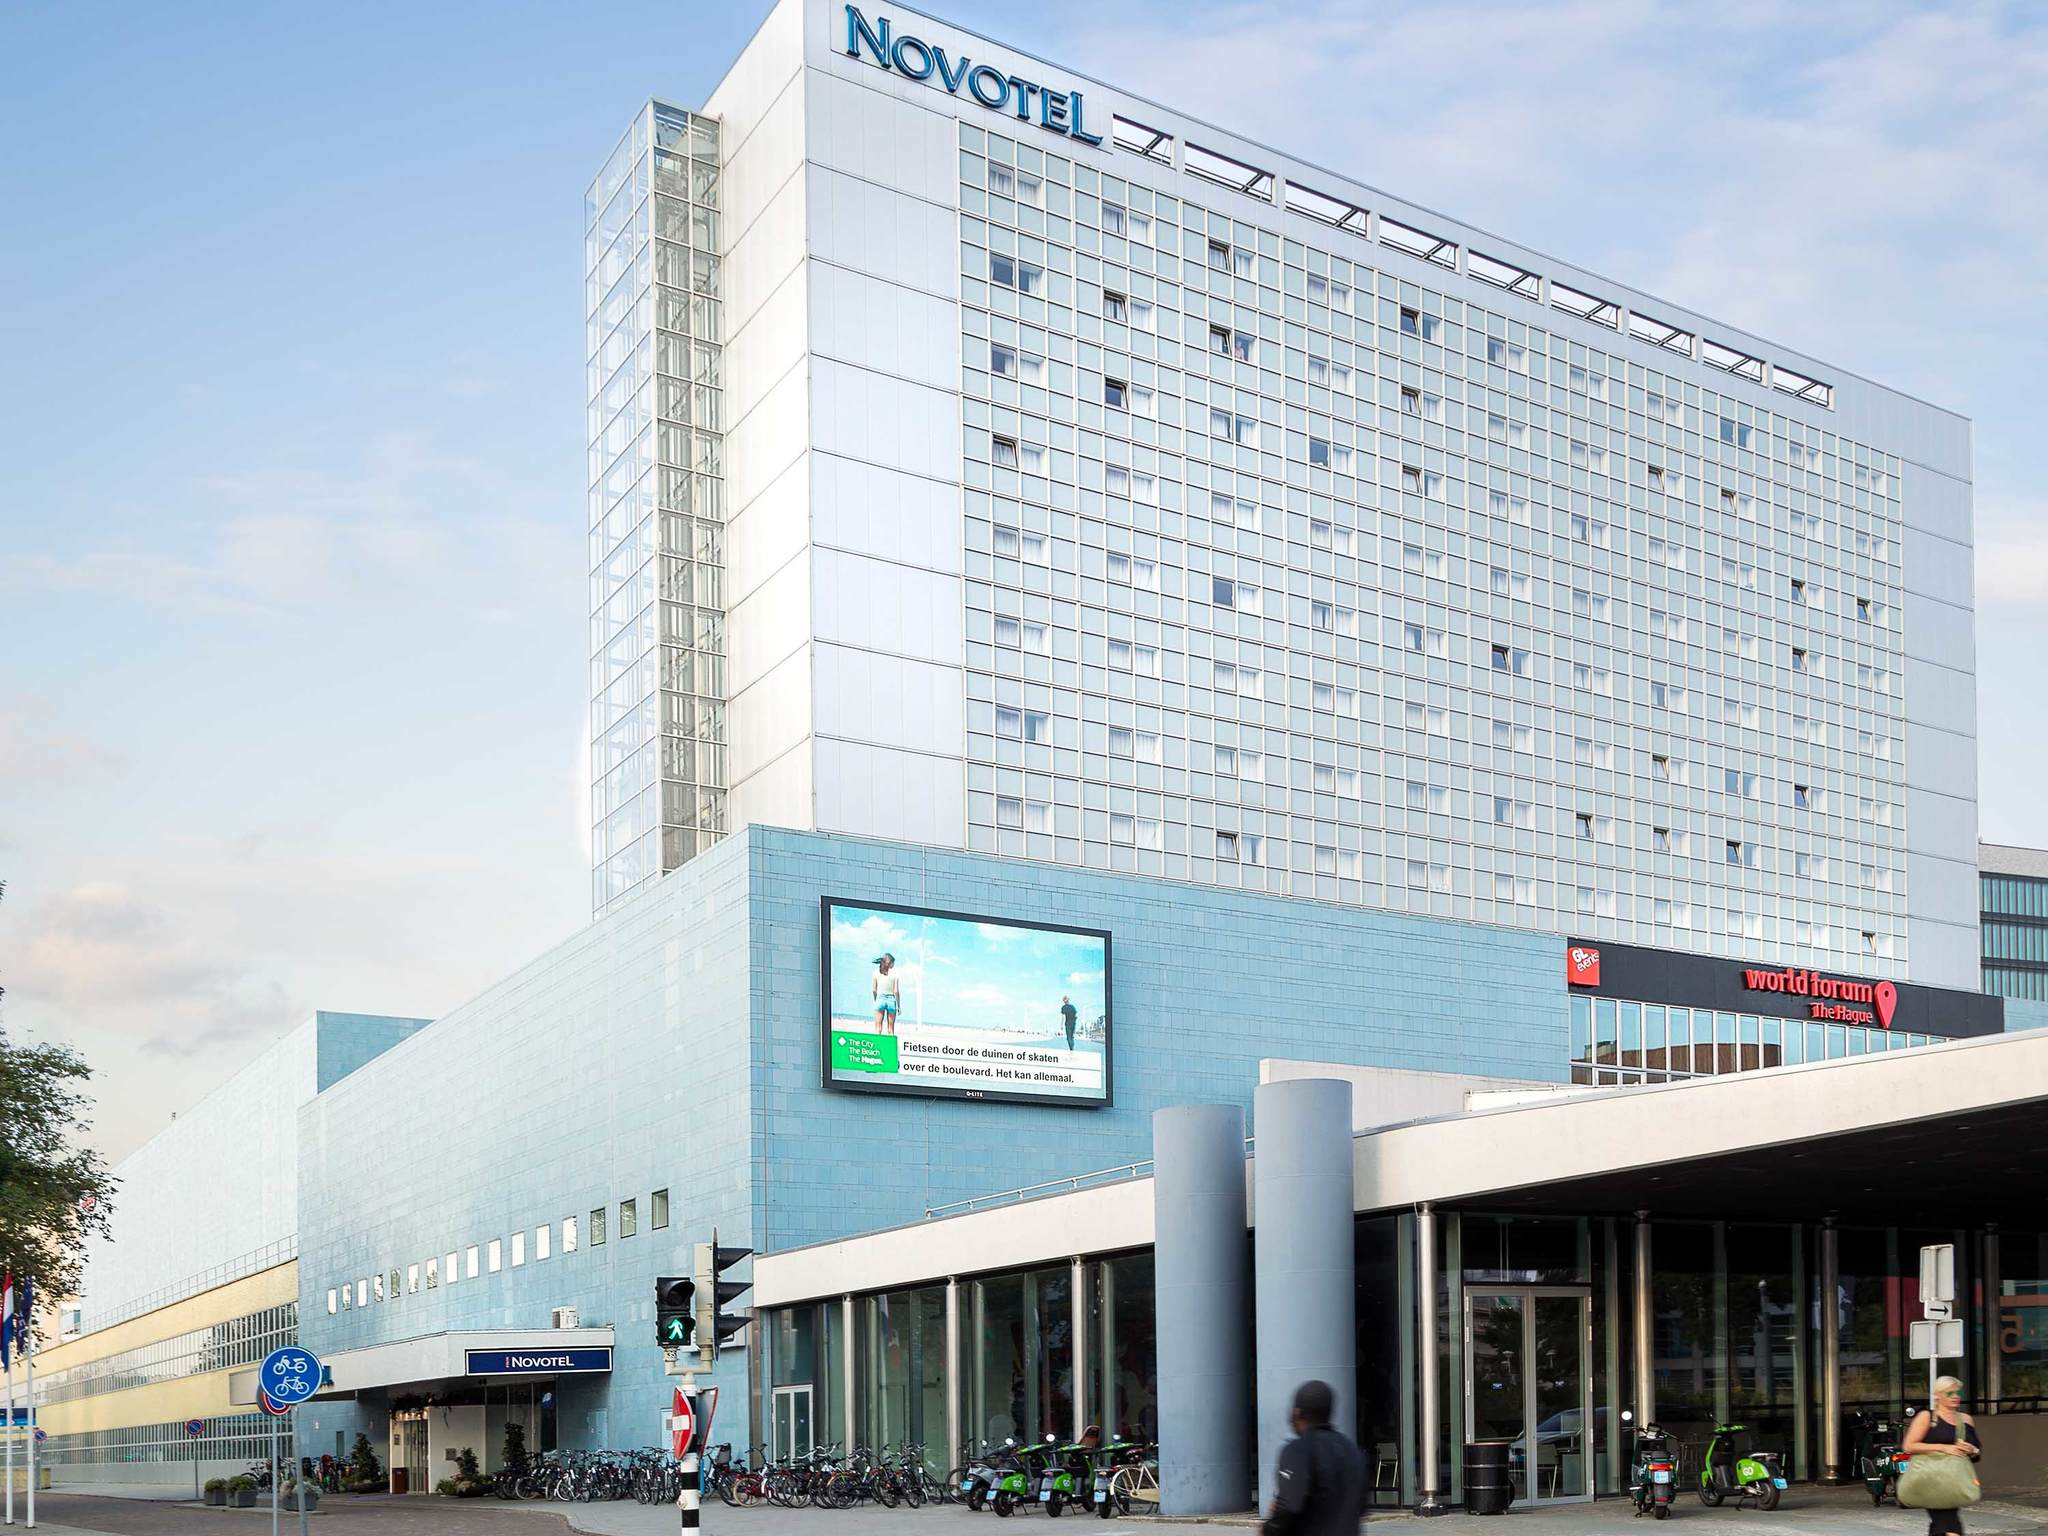 Hotel - Novotel Den Haag World Forum